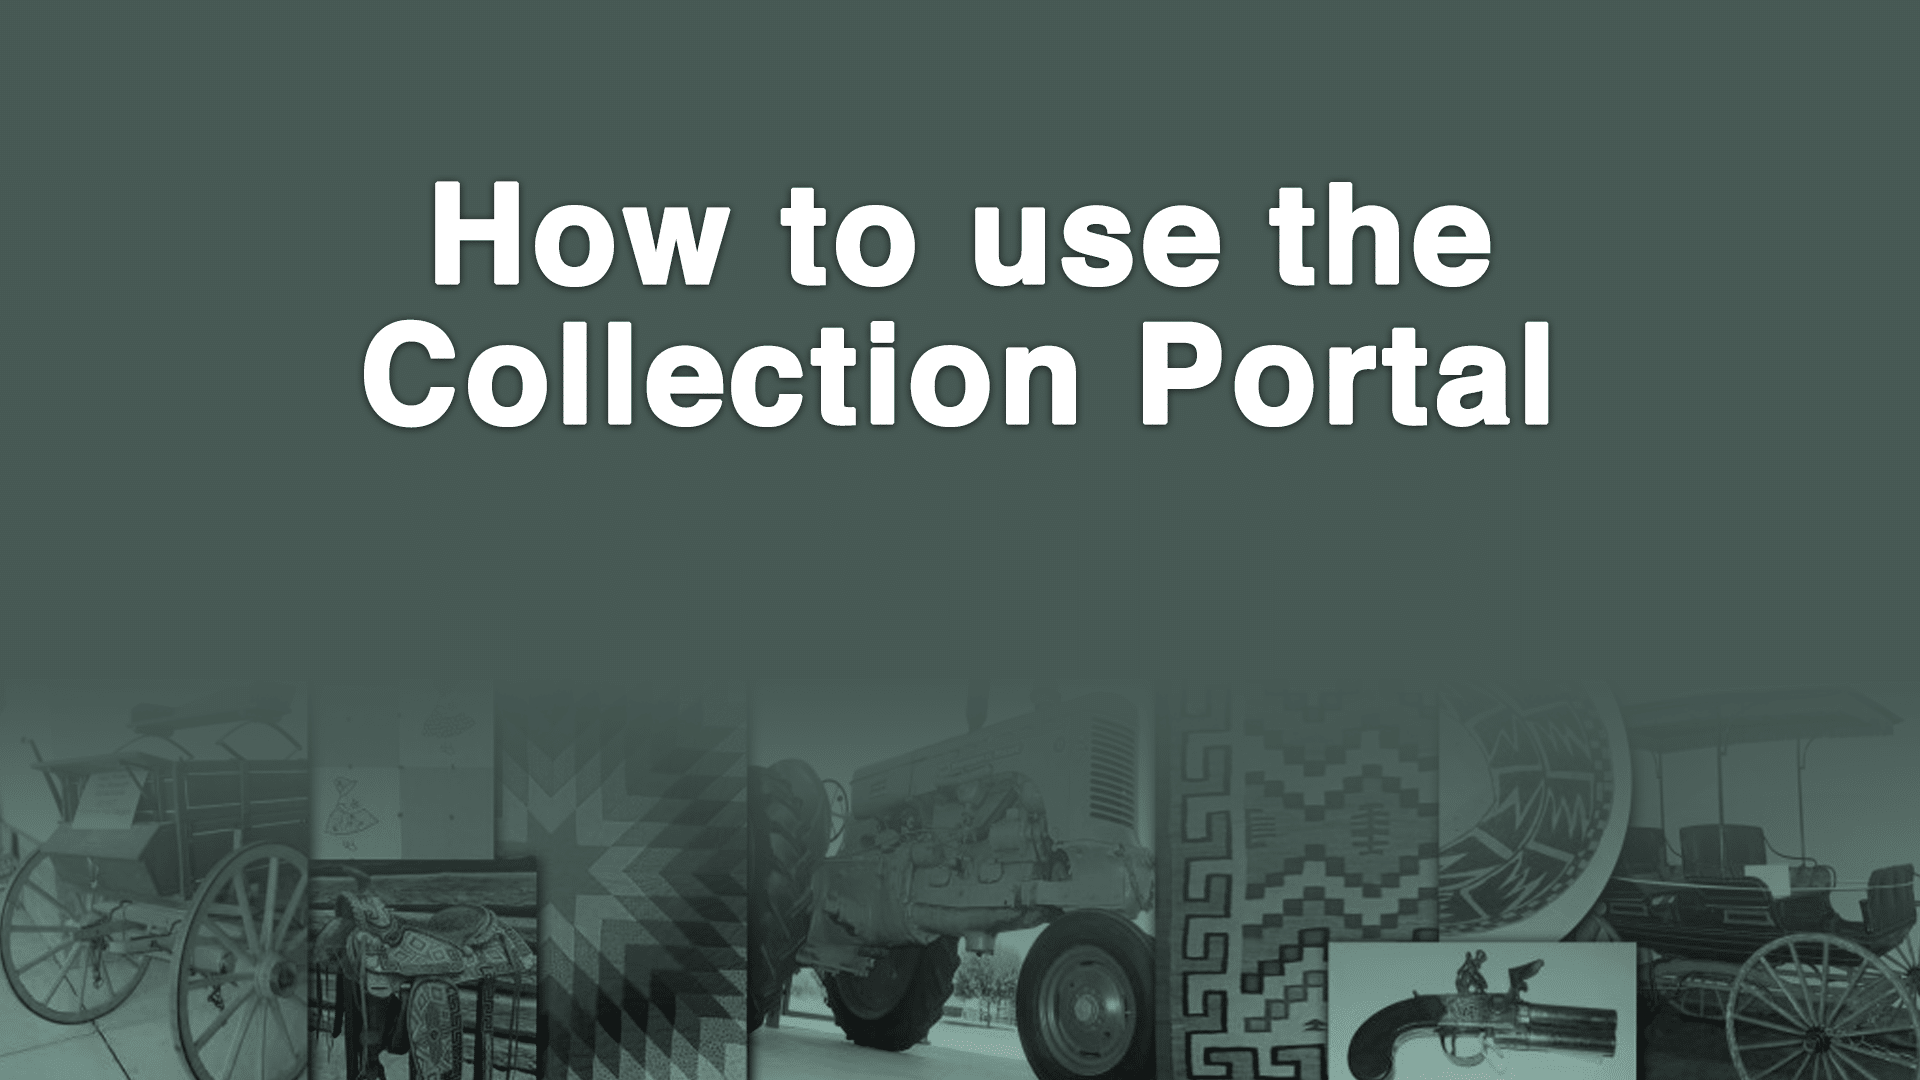 Collection Portal Tutorial